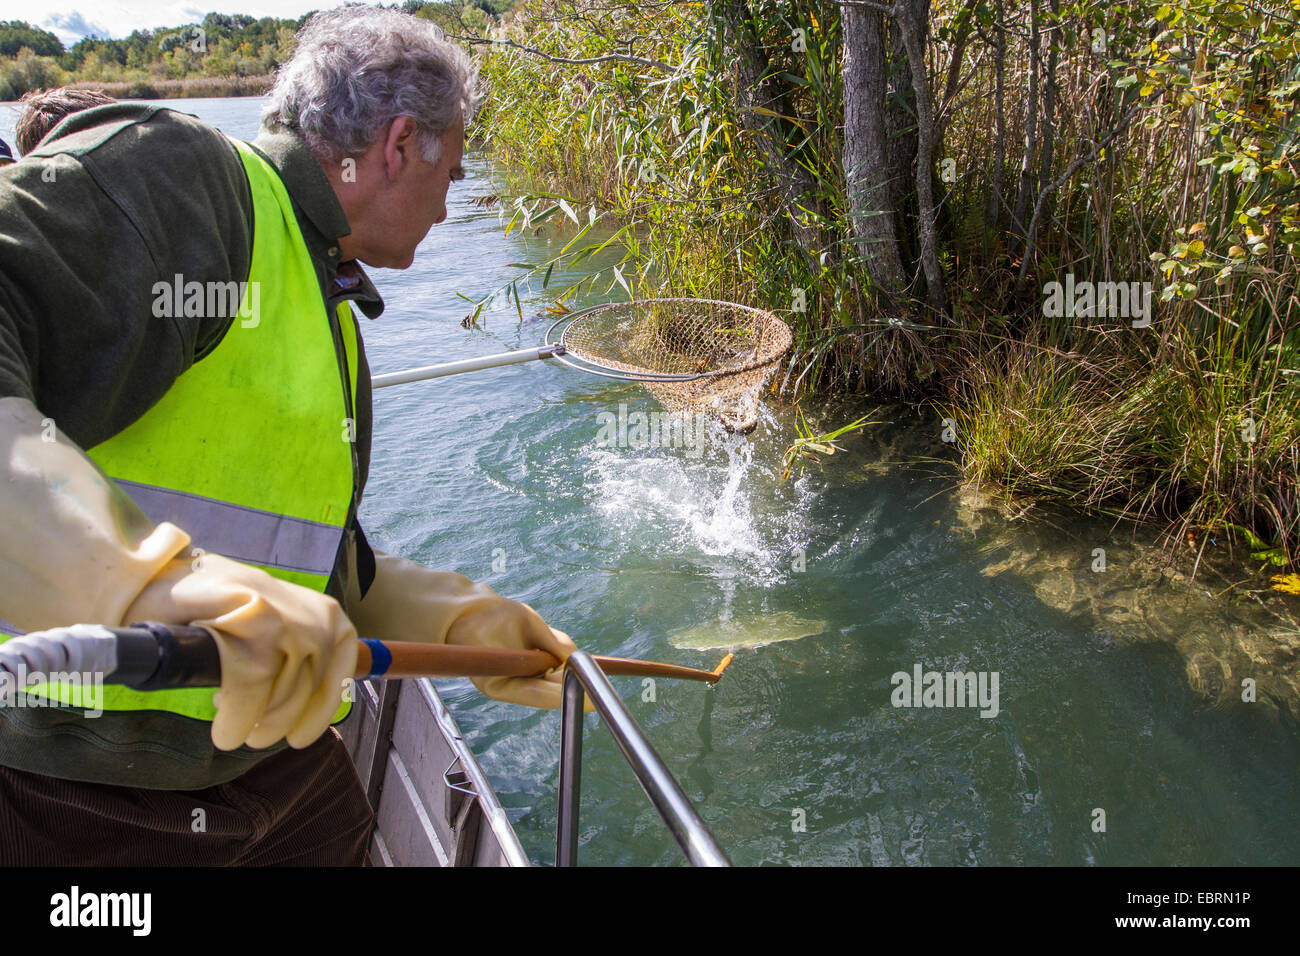 electrofishing at a lake shore for population control, catching eel, Germany - Stock Image